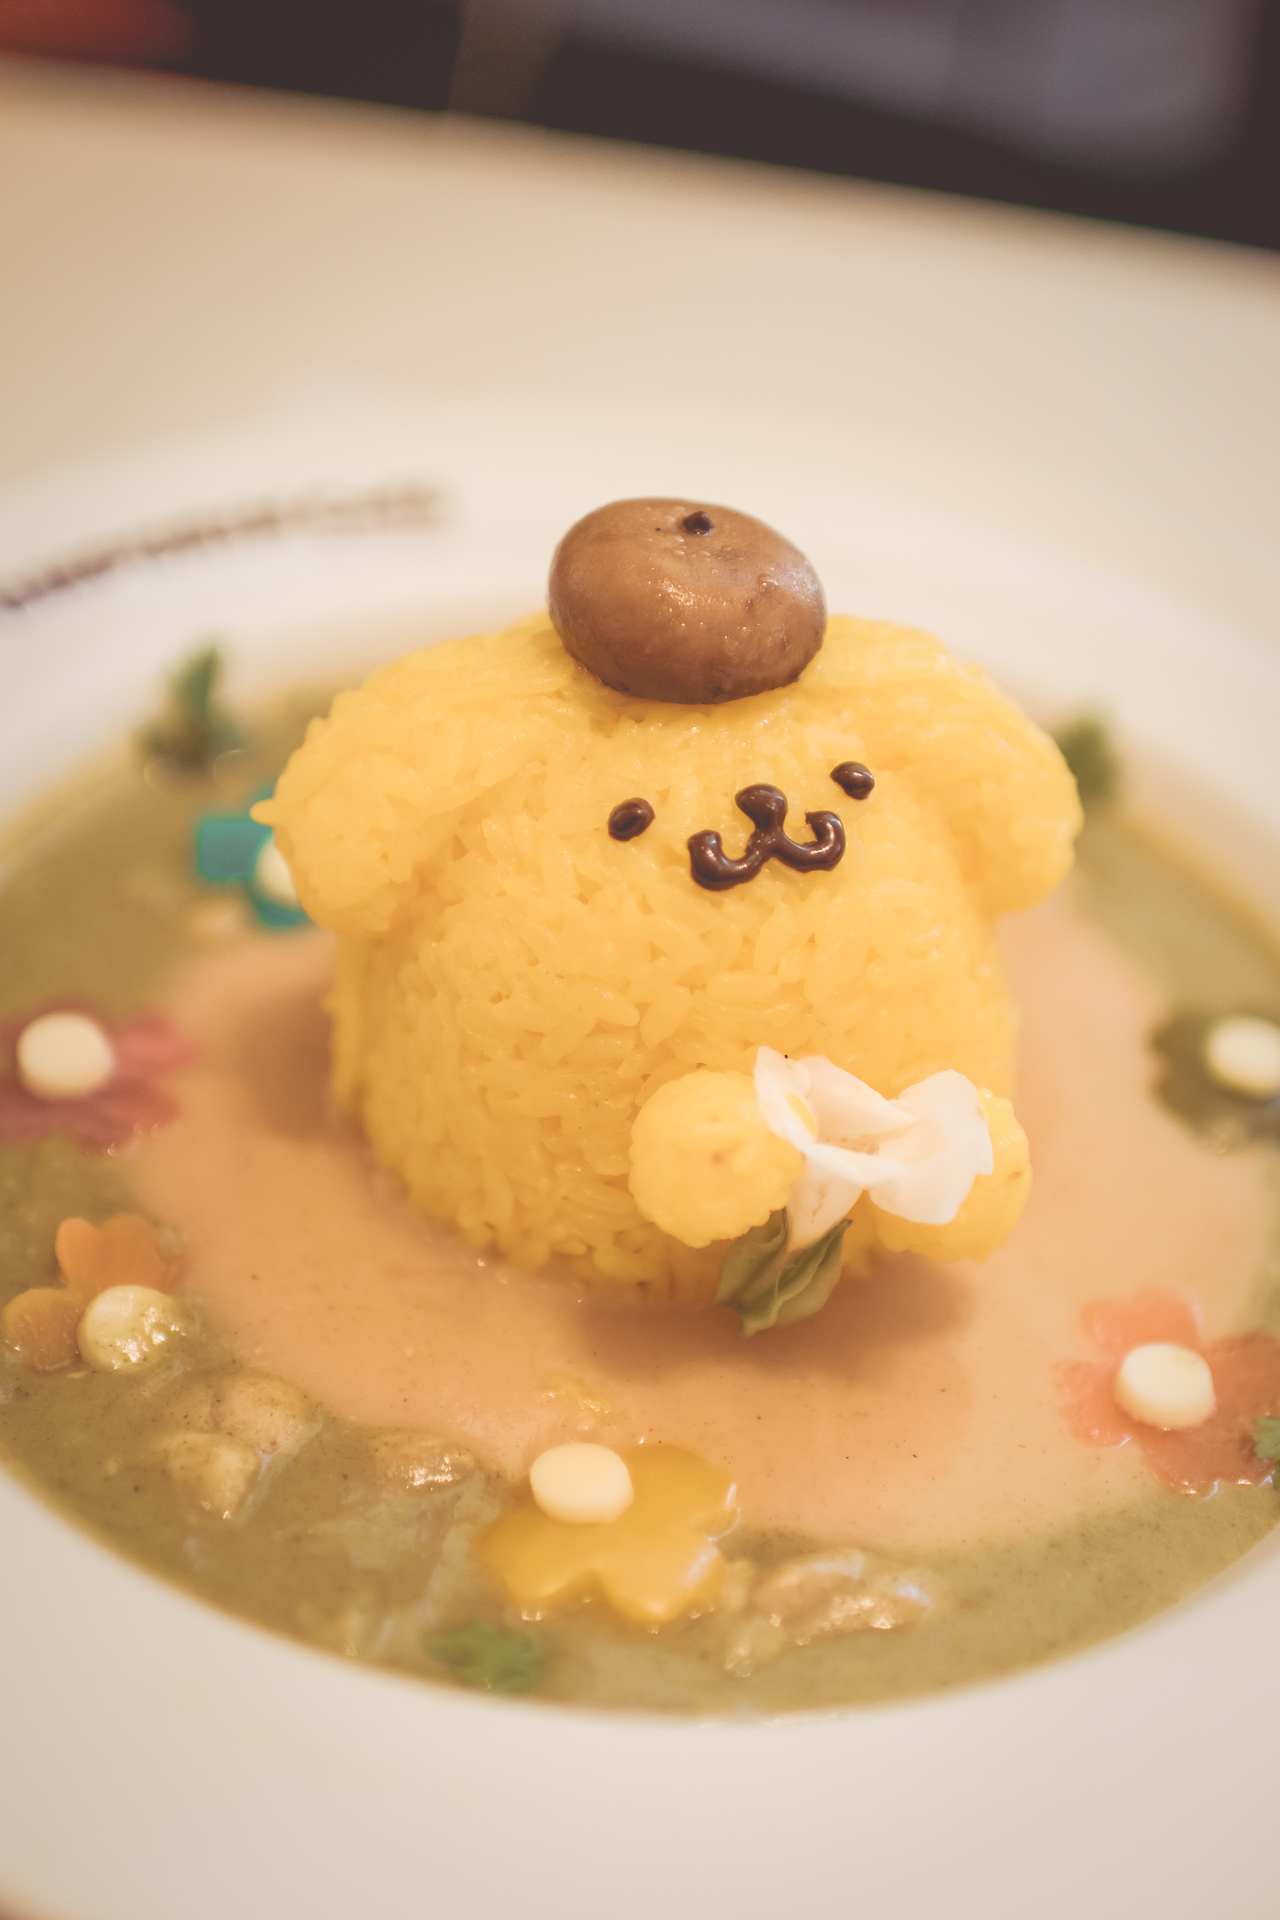 My sister ordered veggie curry. She quite enjoyed her meal and wouldn't stop raving about how fresh it tasted. Also, PomPomPurin's face drawn on with chocolate was an interesting touch!